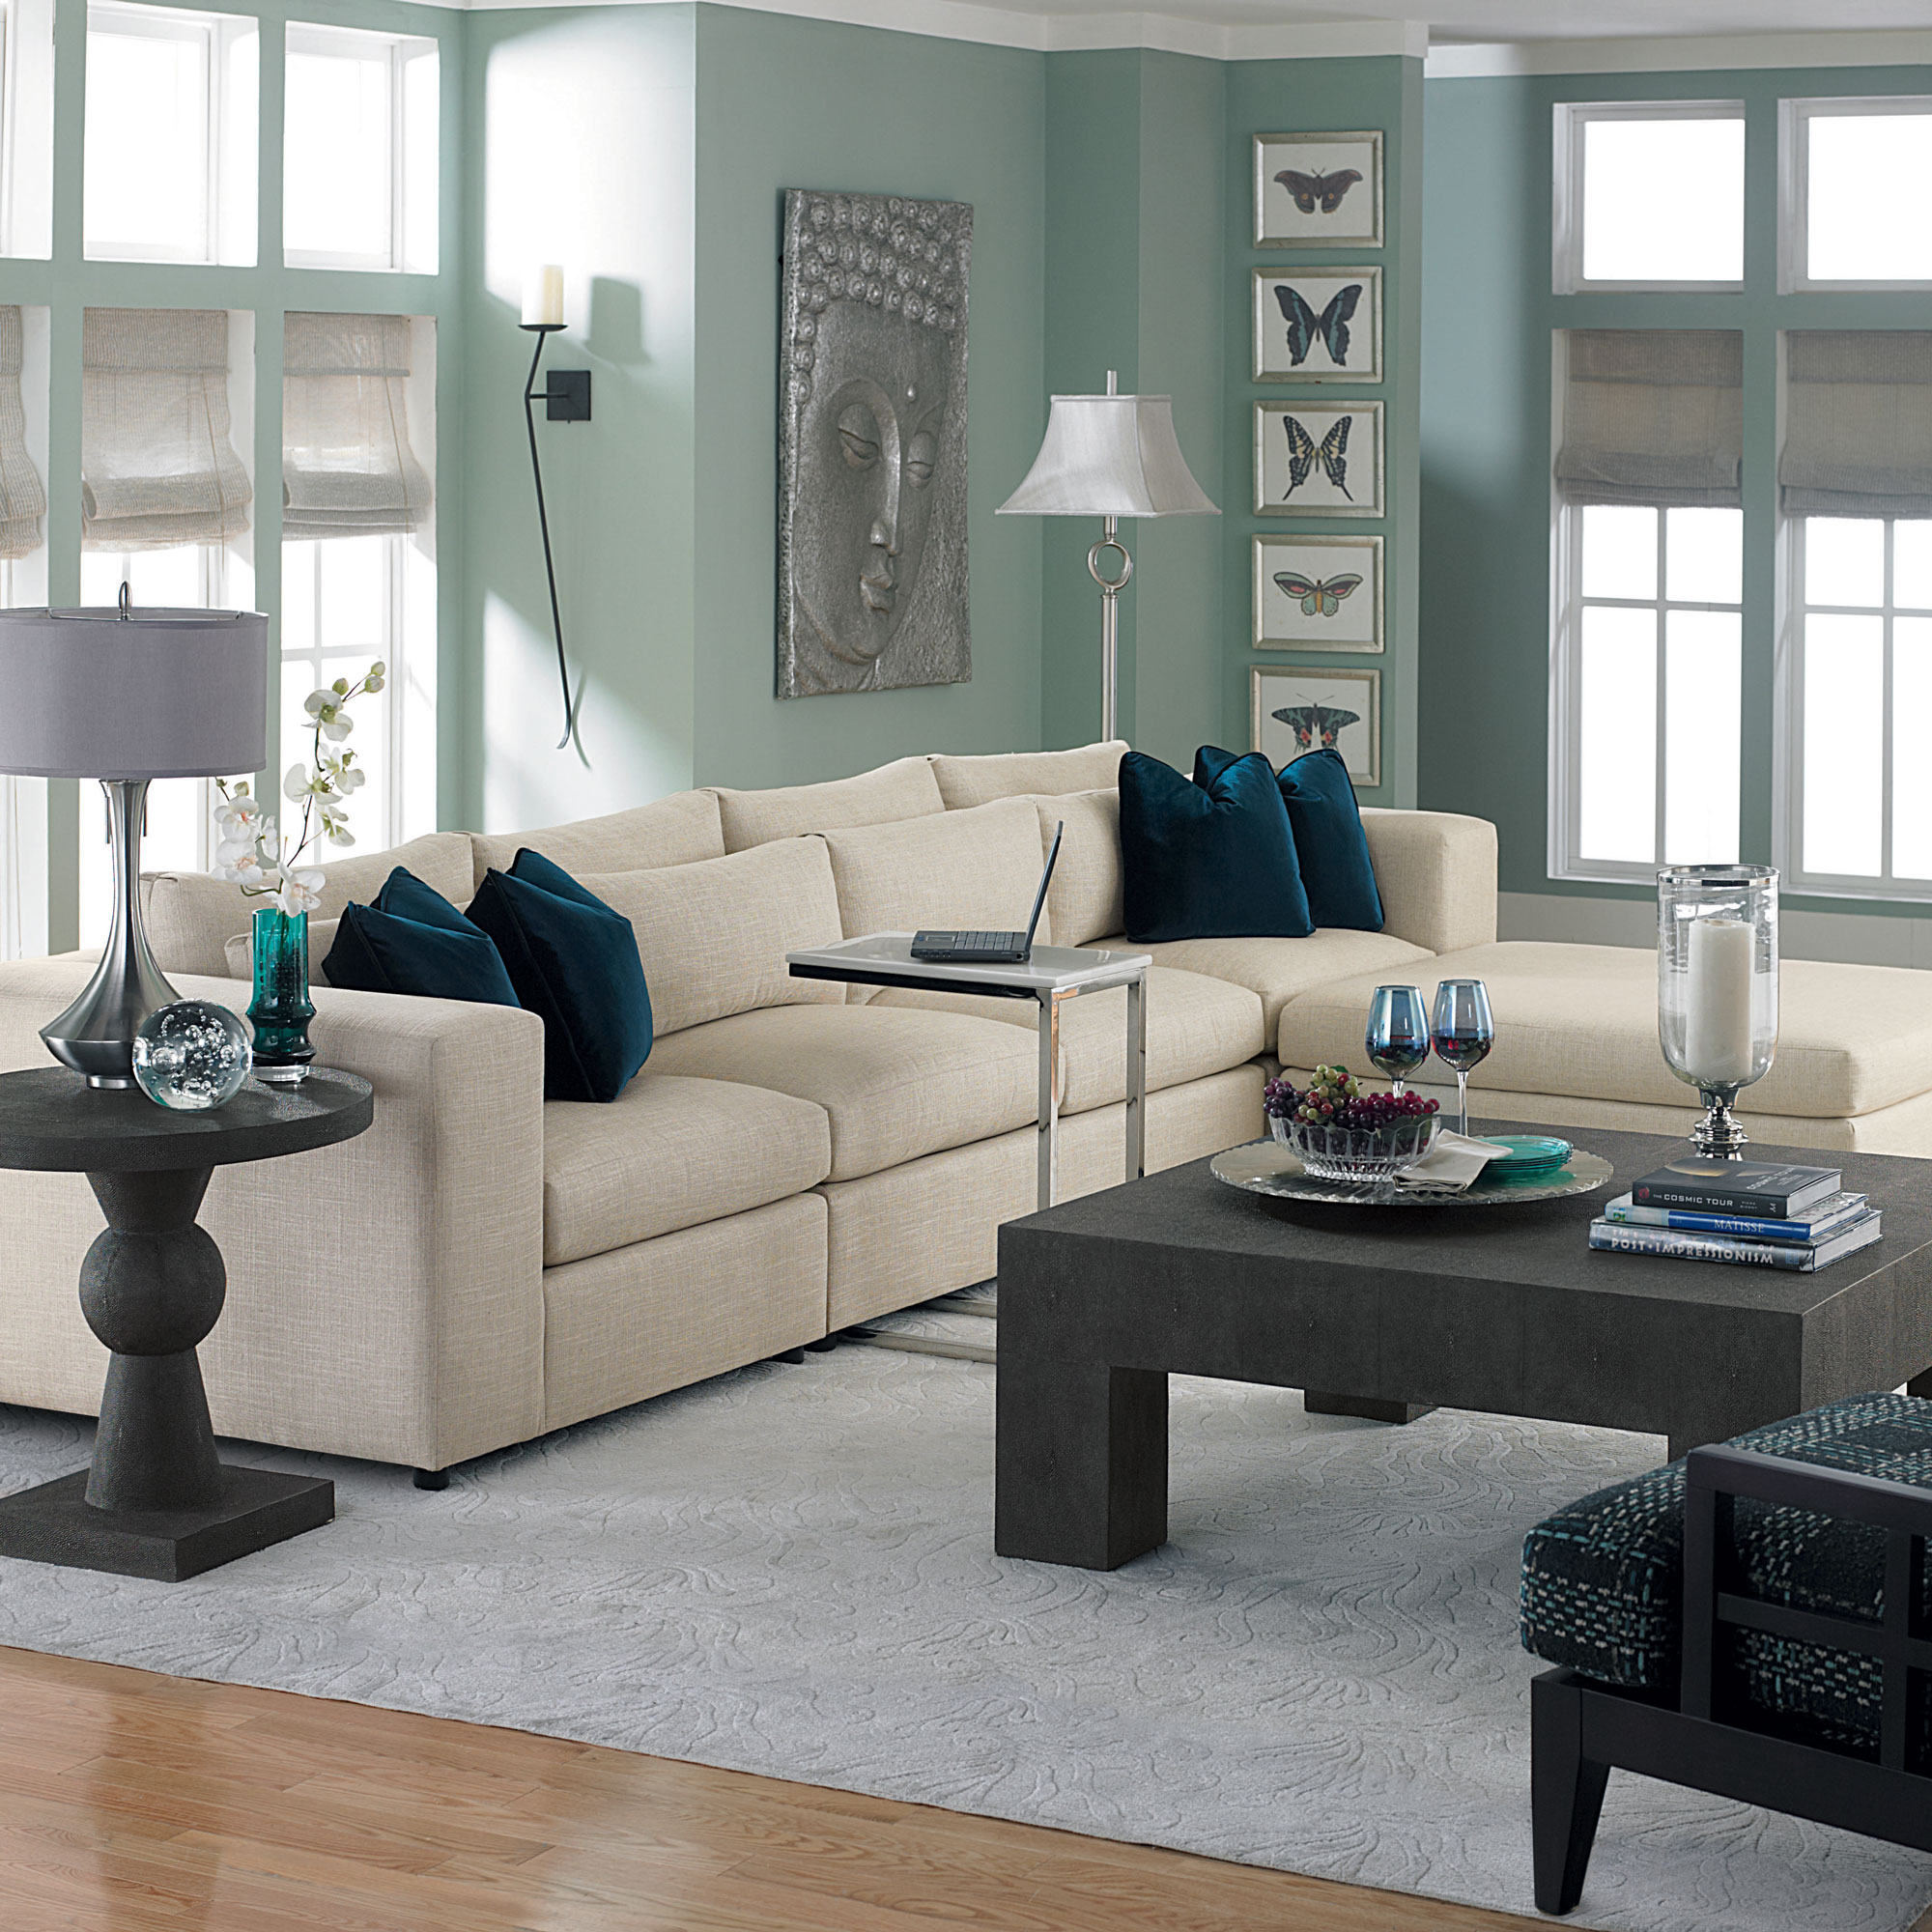 bernhardt living room furniture decorating ideas for with gray couch como